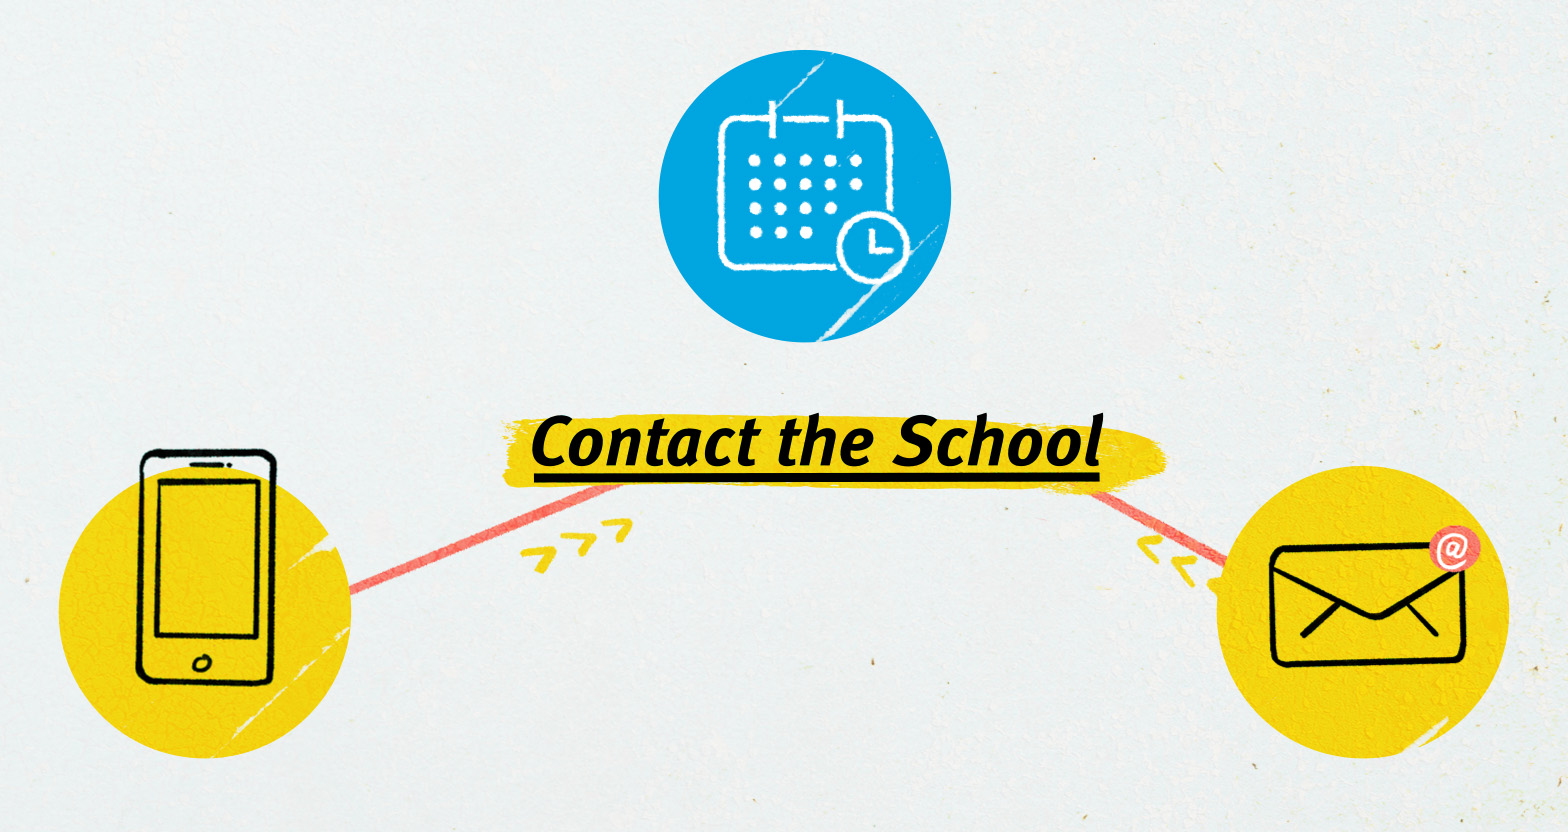 Contact the school